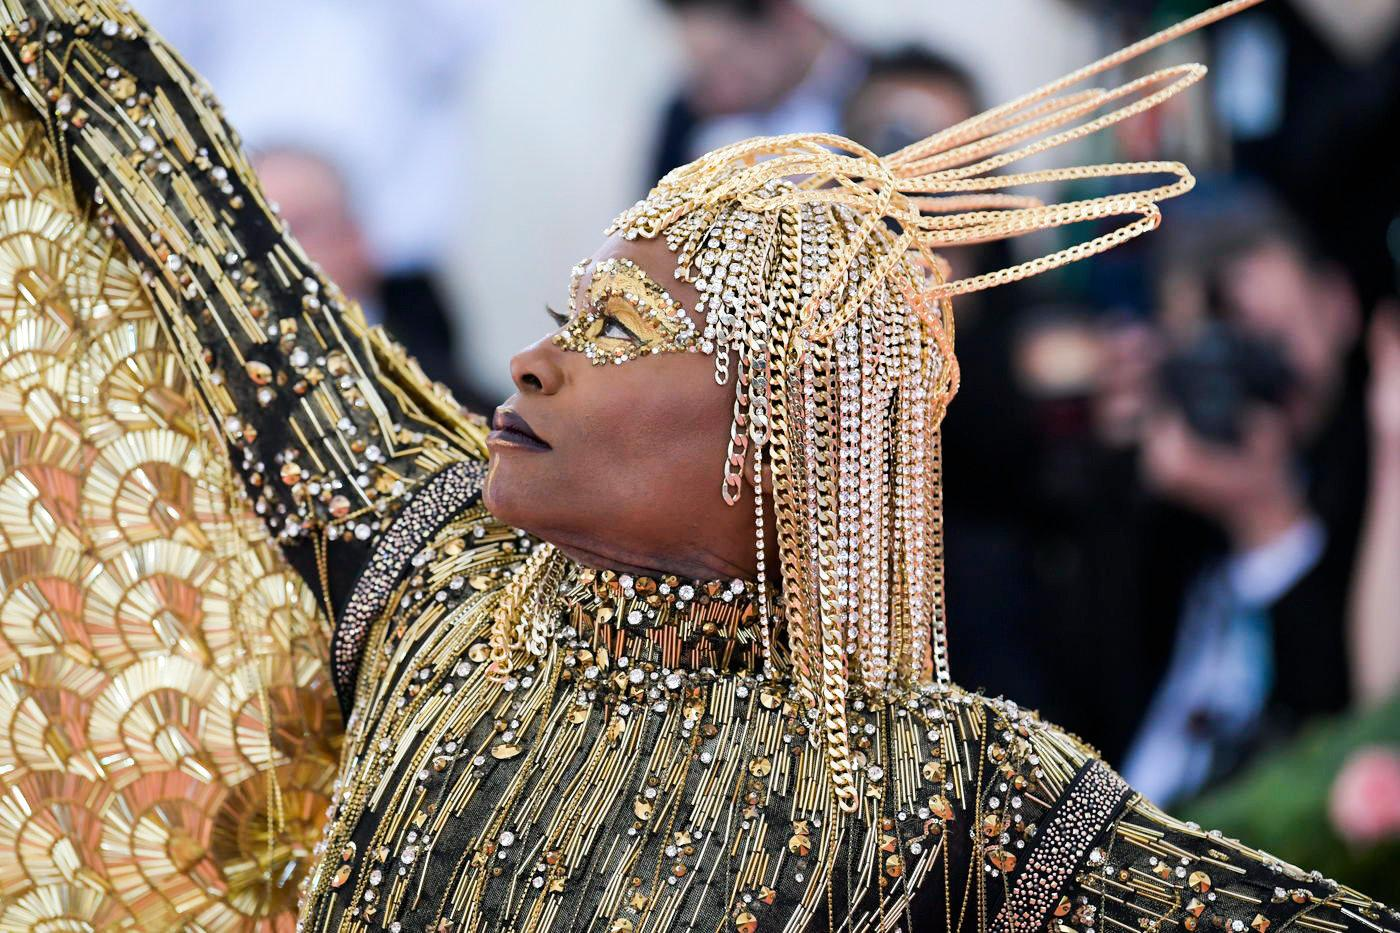 Pose on FX star Billy Porter wore an Egyptian-inspired body suit designed by the Blonds, and he was carried into the gala via Sedan Chair by six chairmen.  Image  via